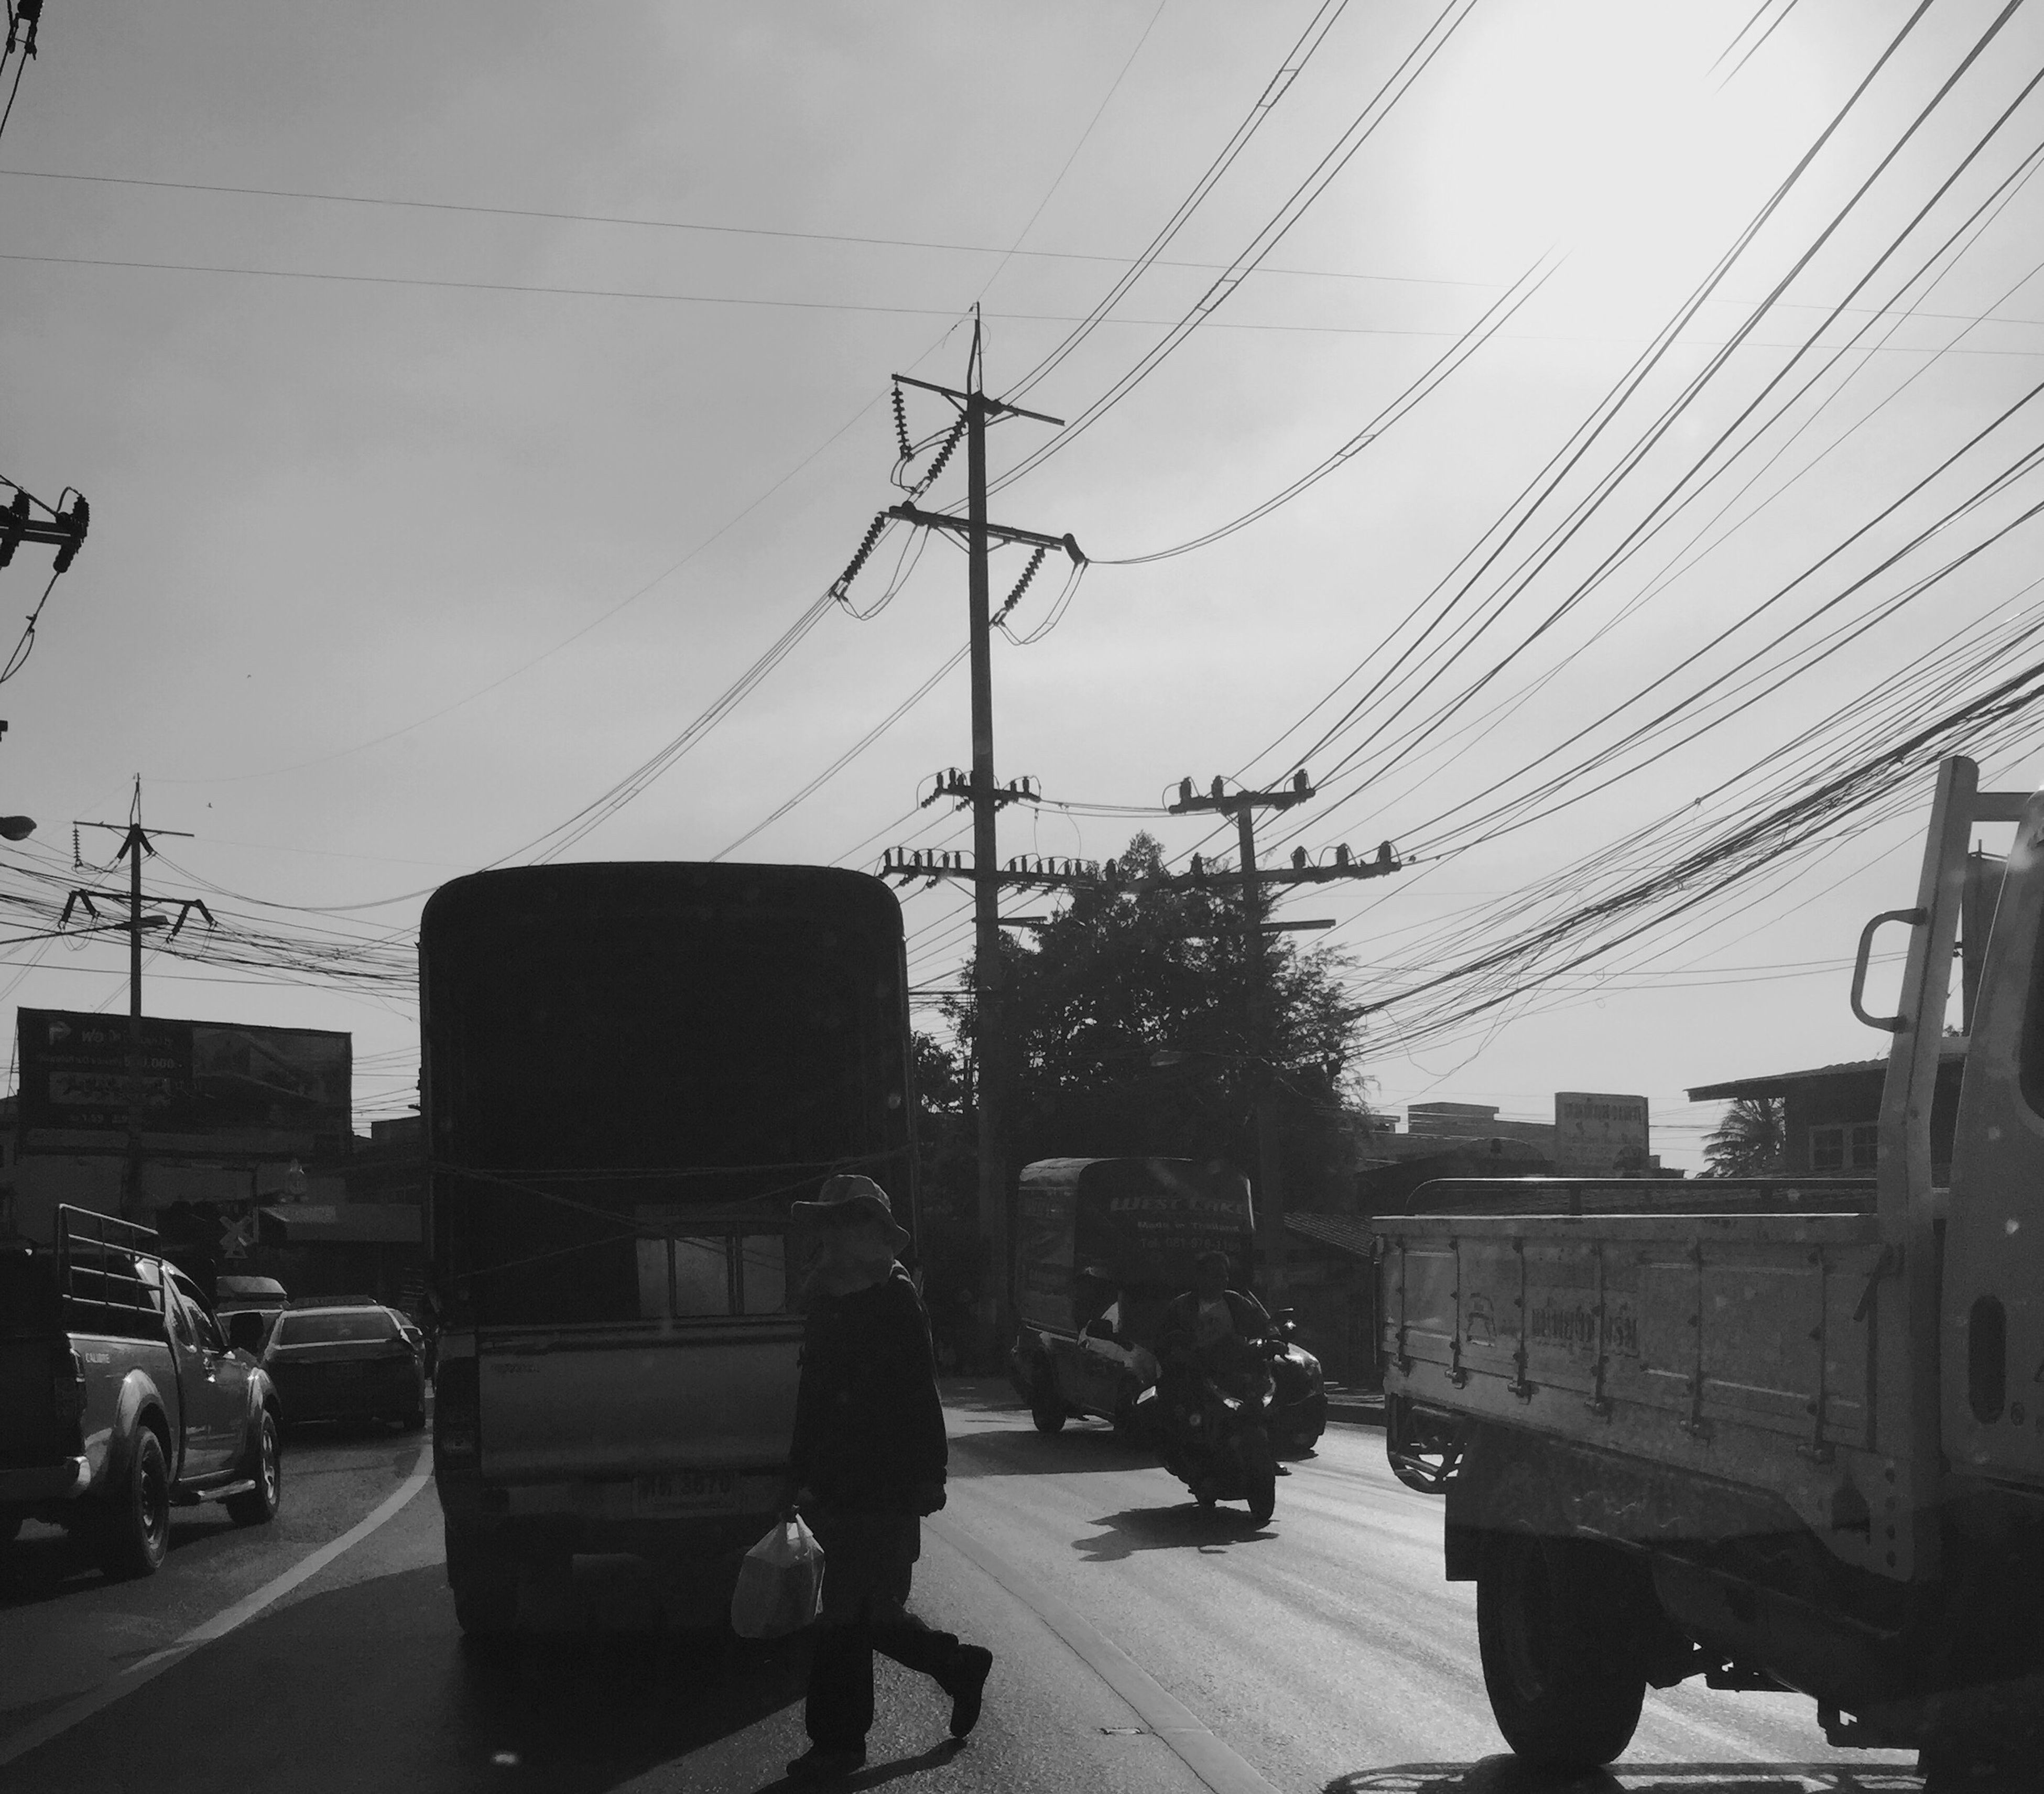 transportation, land vehicle, car, mode of transport, street, power line, cable, built structure, building exterior, city, sky, architecture, outdoors, electricity, electricity pylon, day, city life, road, connection, no people